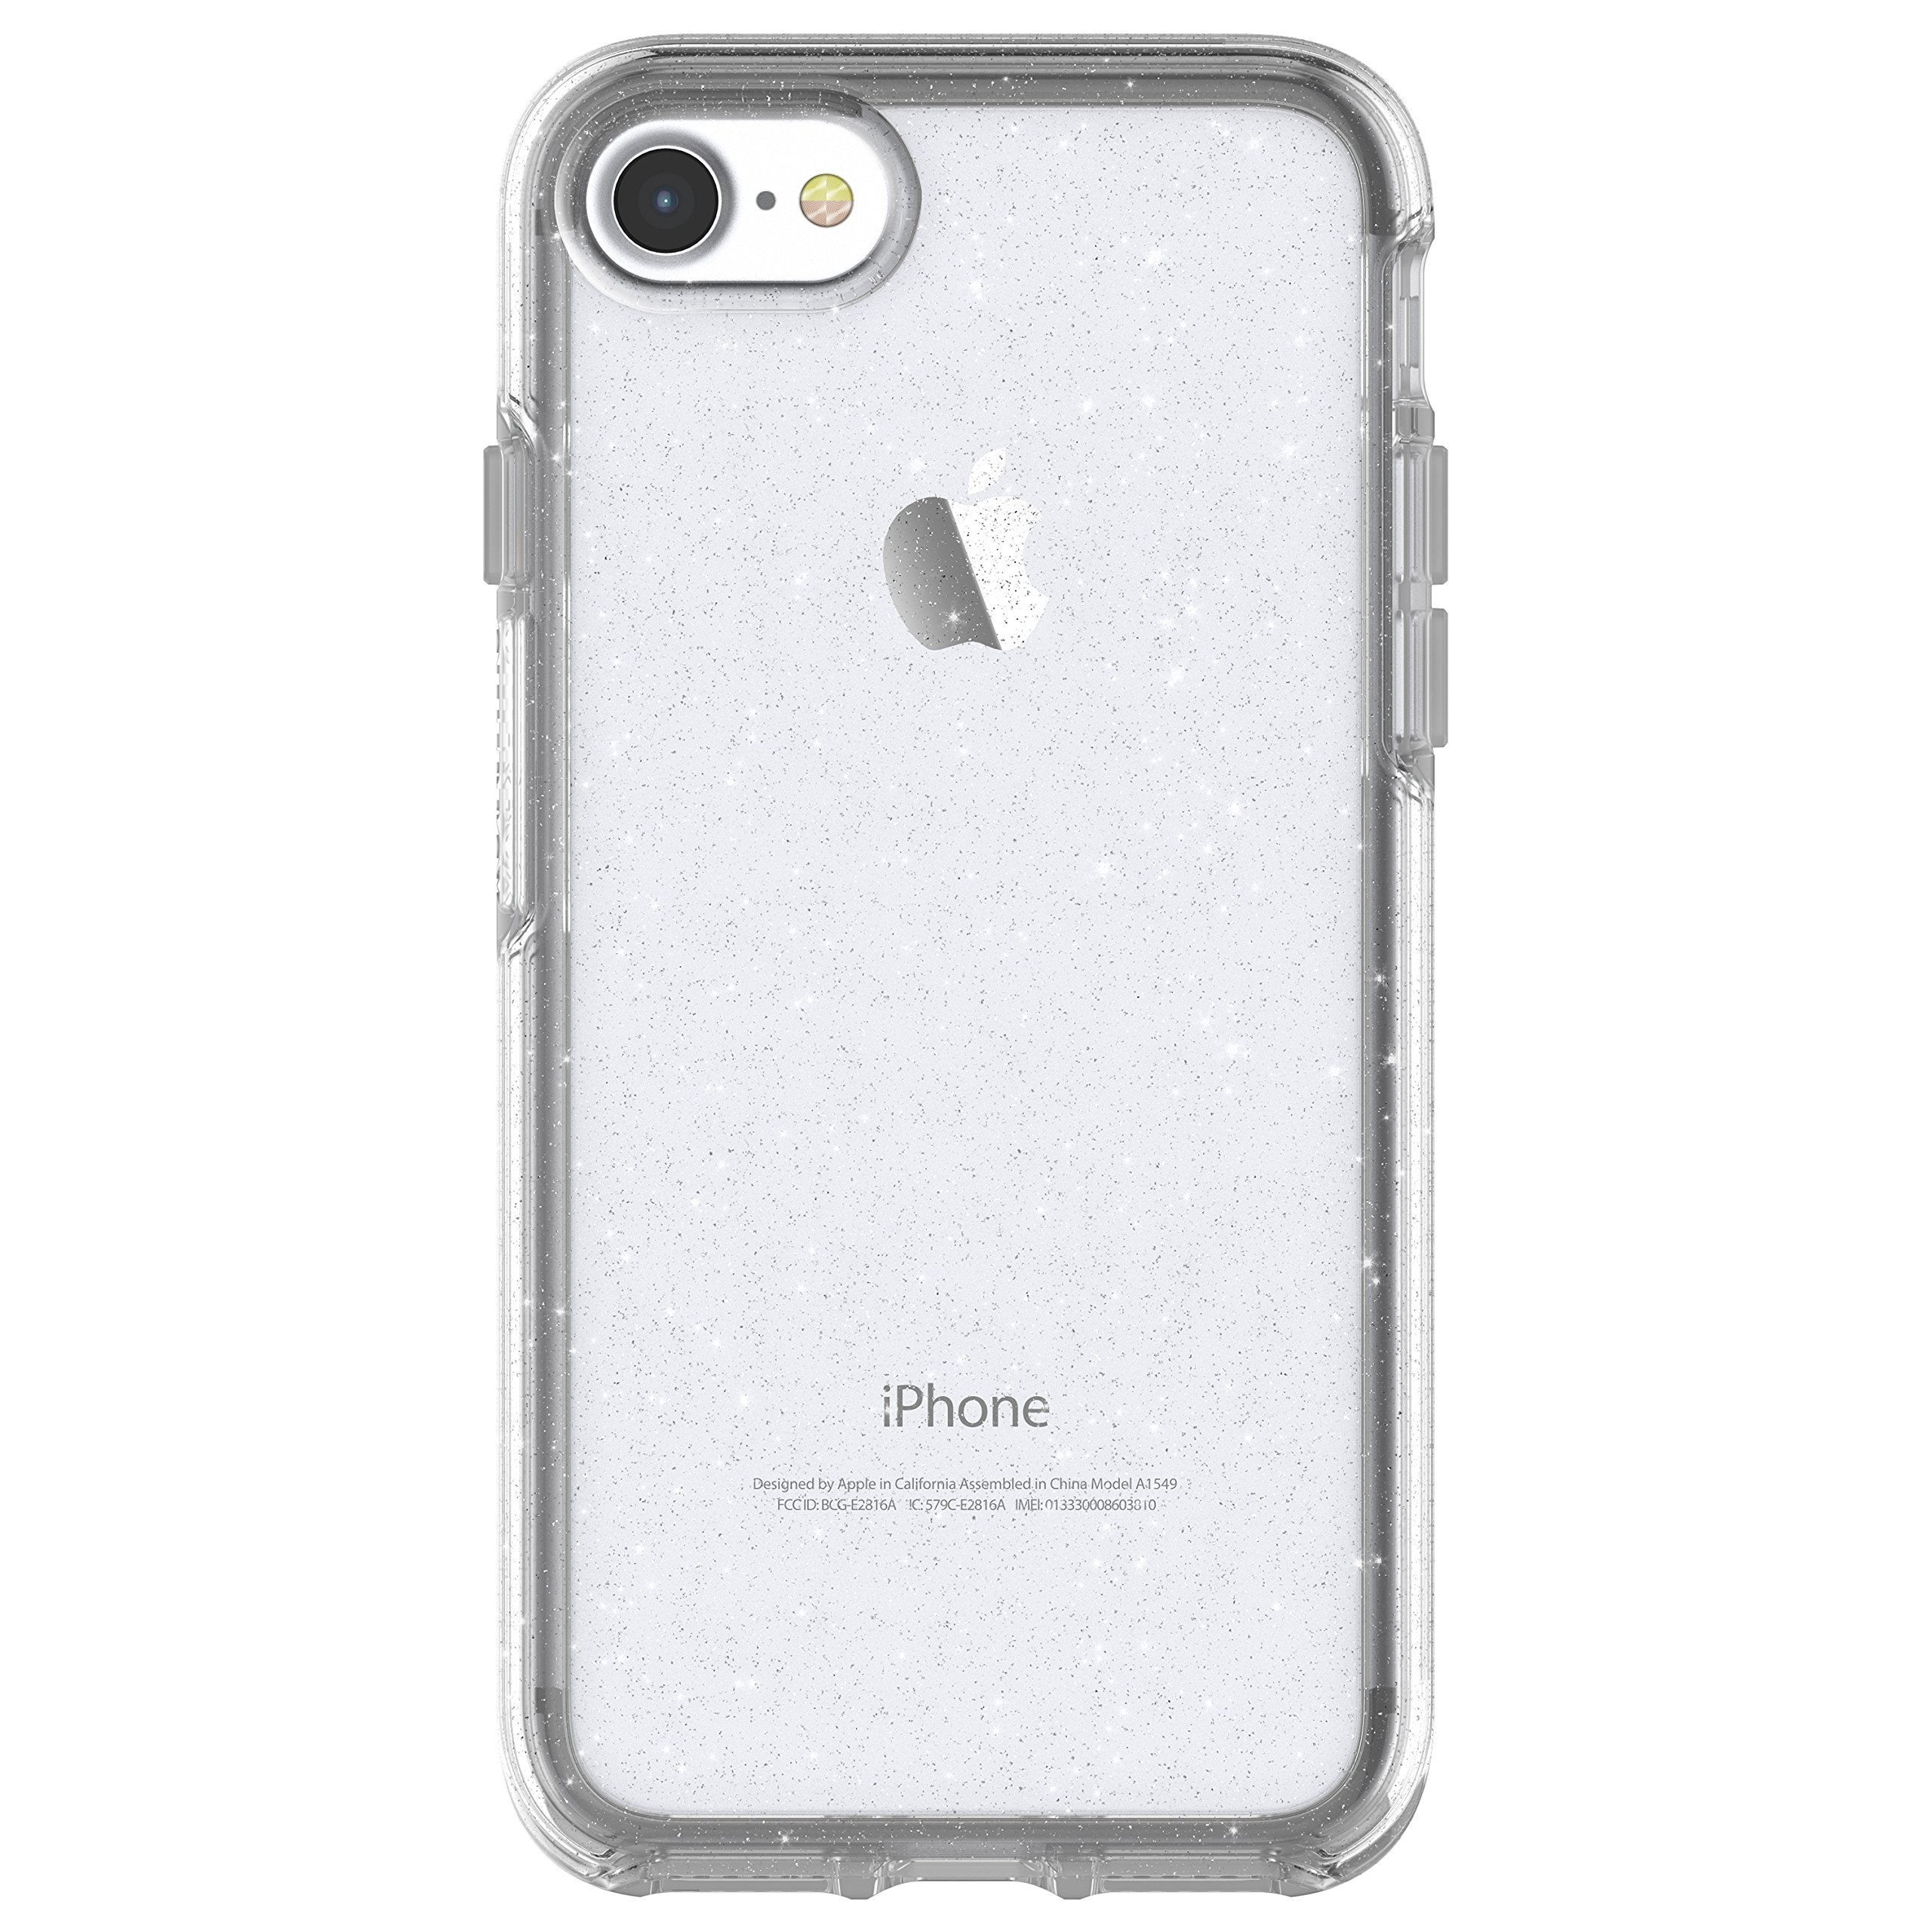 OtterBox SYMMETRY CLEAR SERIES Case for iPhone 8 & iPhone 7 (NOT Plus) - Retail Packaging - STARDUST (SILVER FLAKE/CLEAR) by OtterBox